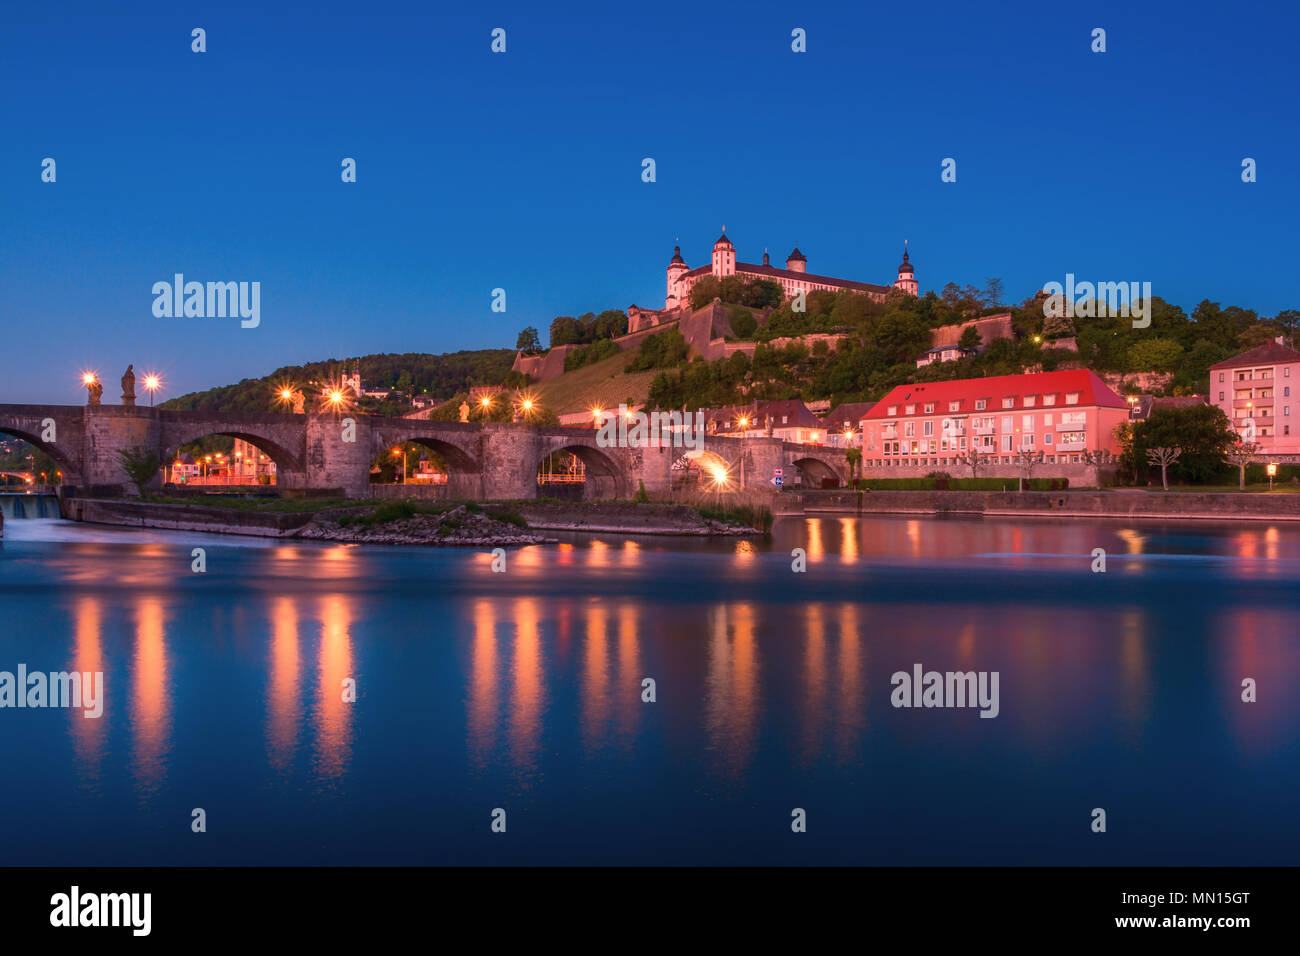 Beautiful stunning view of Wurzburg Old Main Bridge over the Main river and the Castle in the Old Town of Wurzburg, Bavaria, Germany - part of the Rom - Stock Image